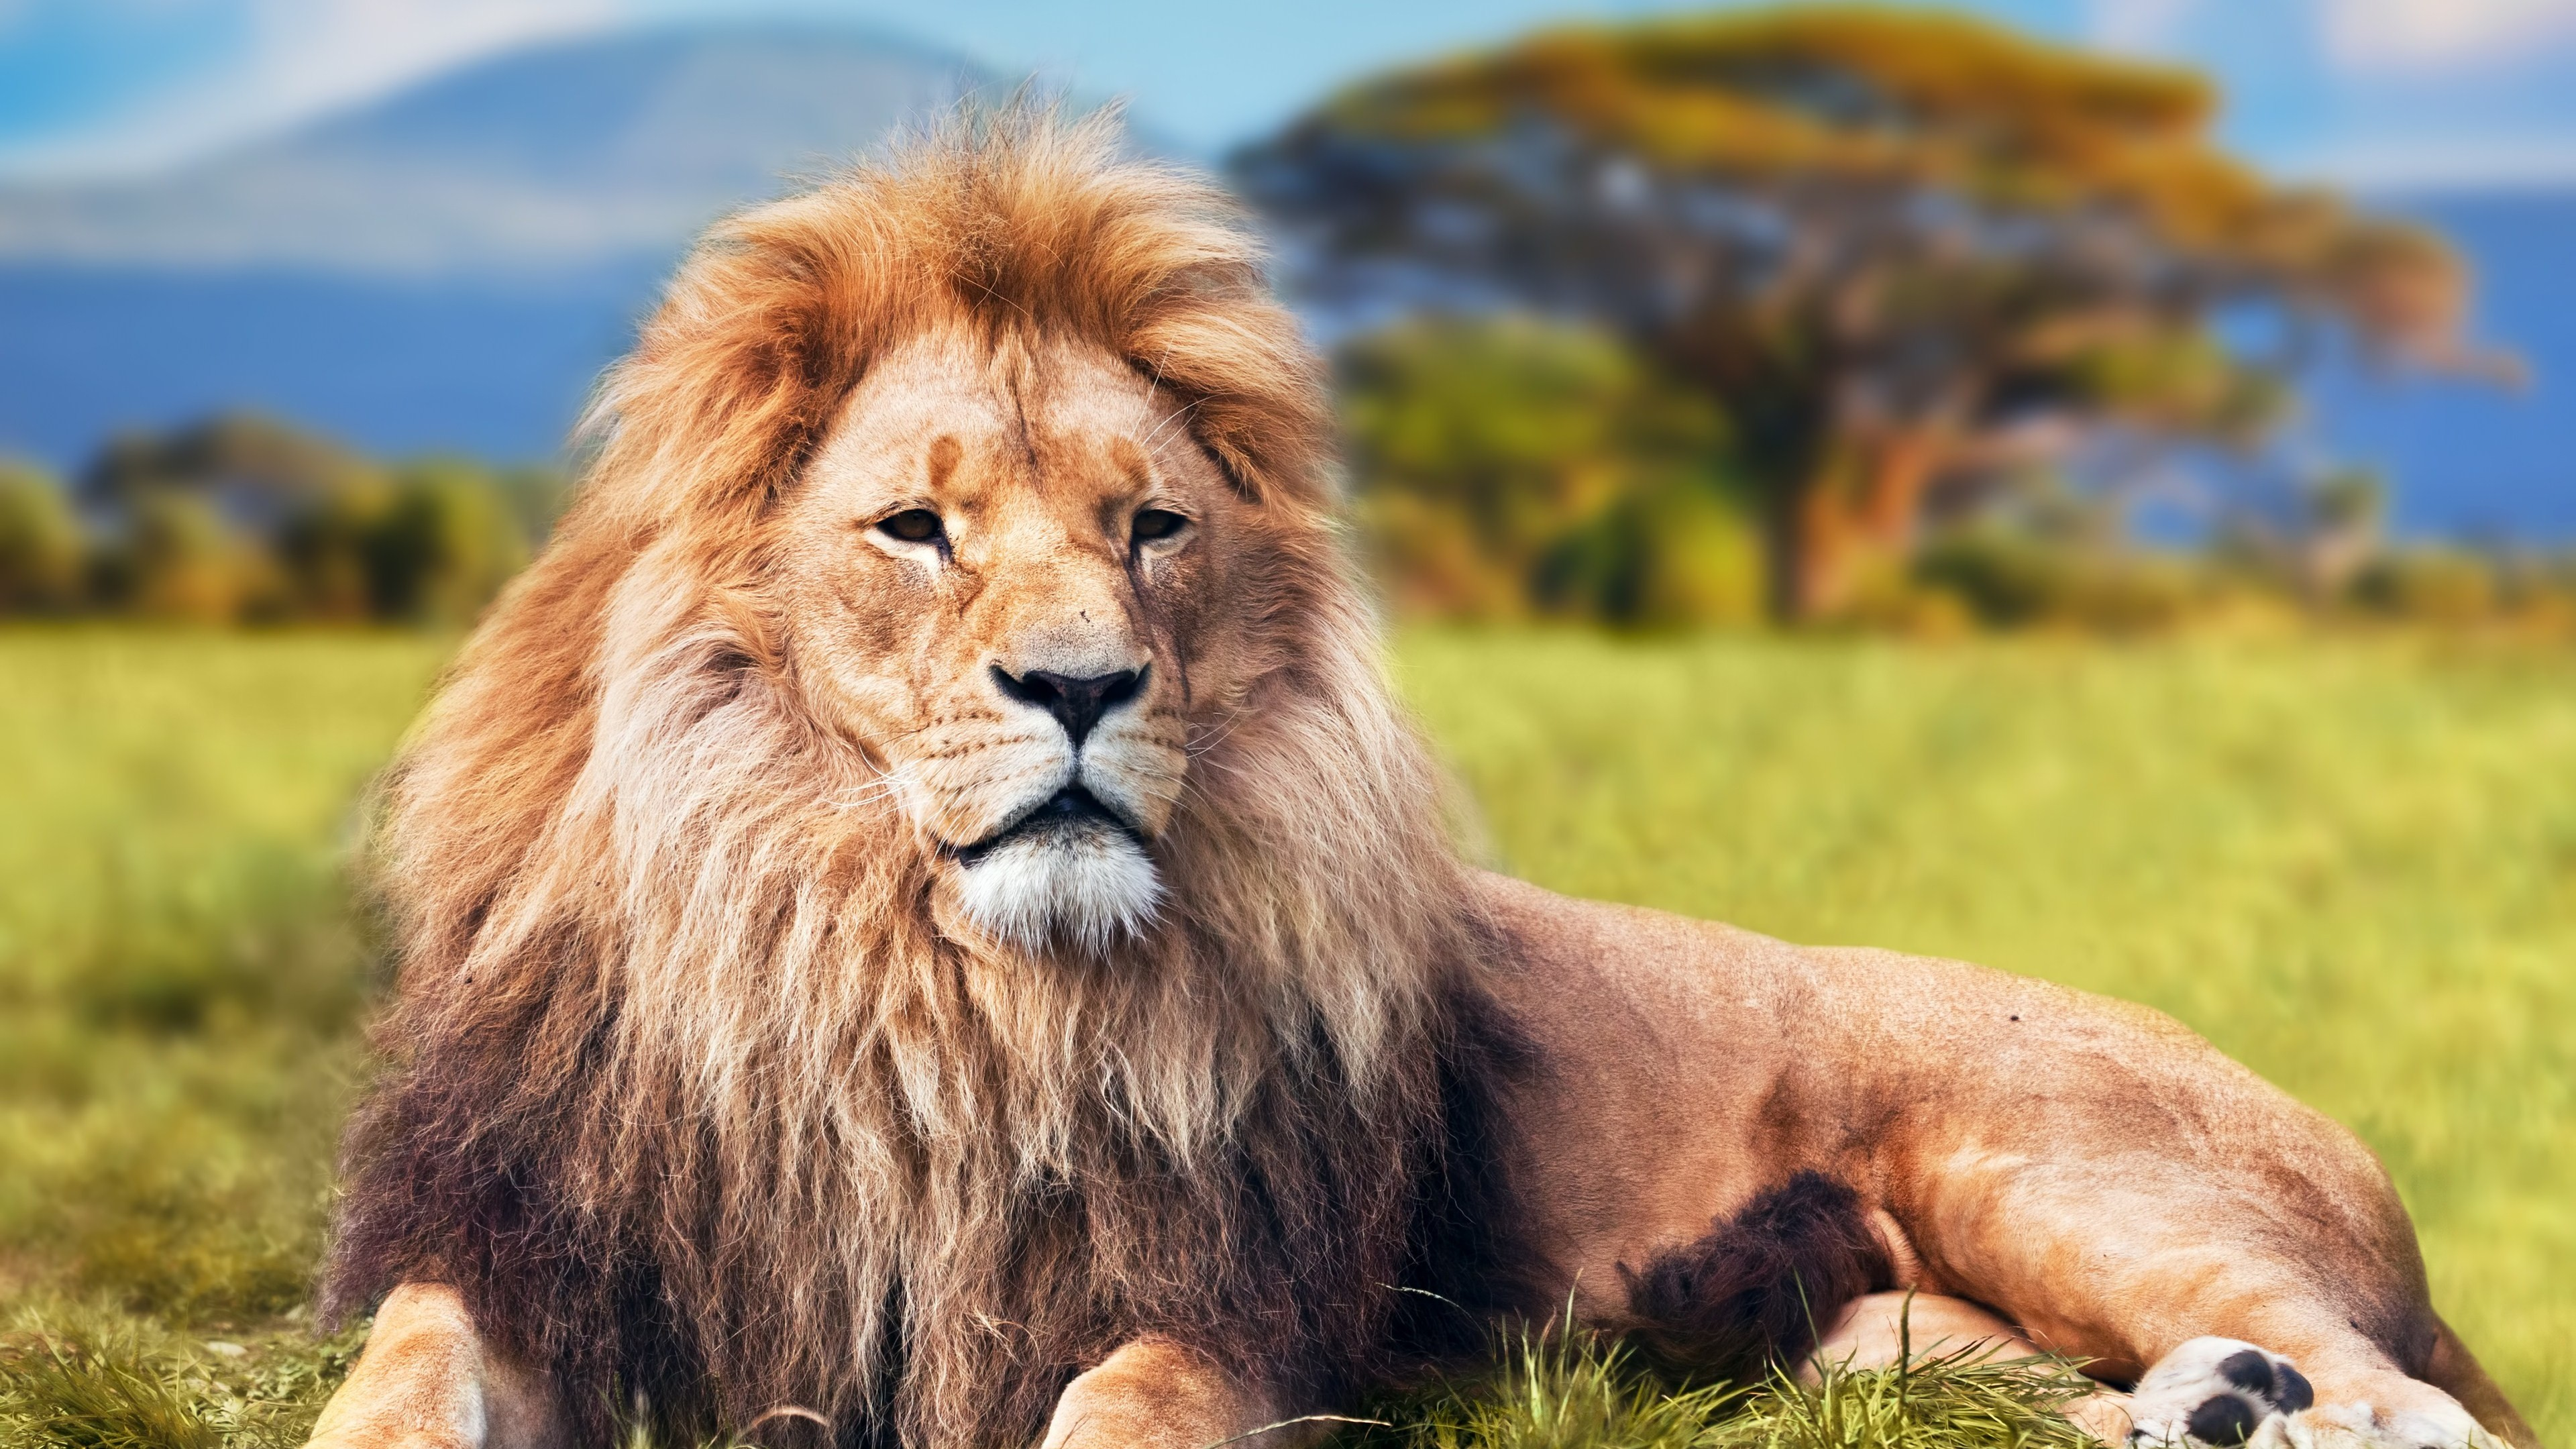 Wallpaper 4k Lion 4k Animals Wallpapers Forest Wallpapers King